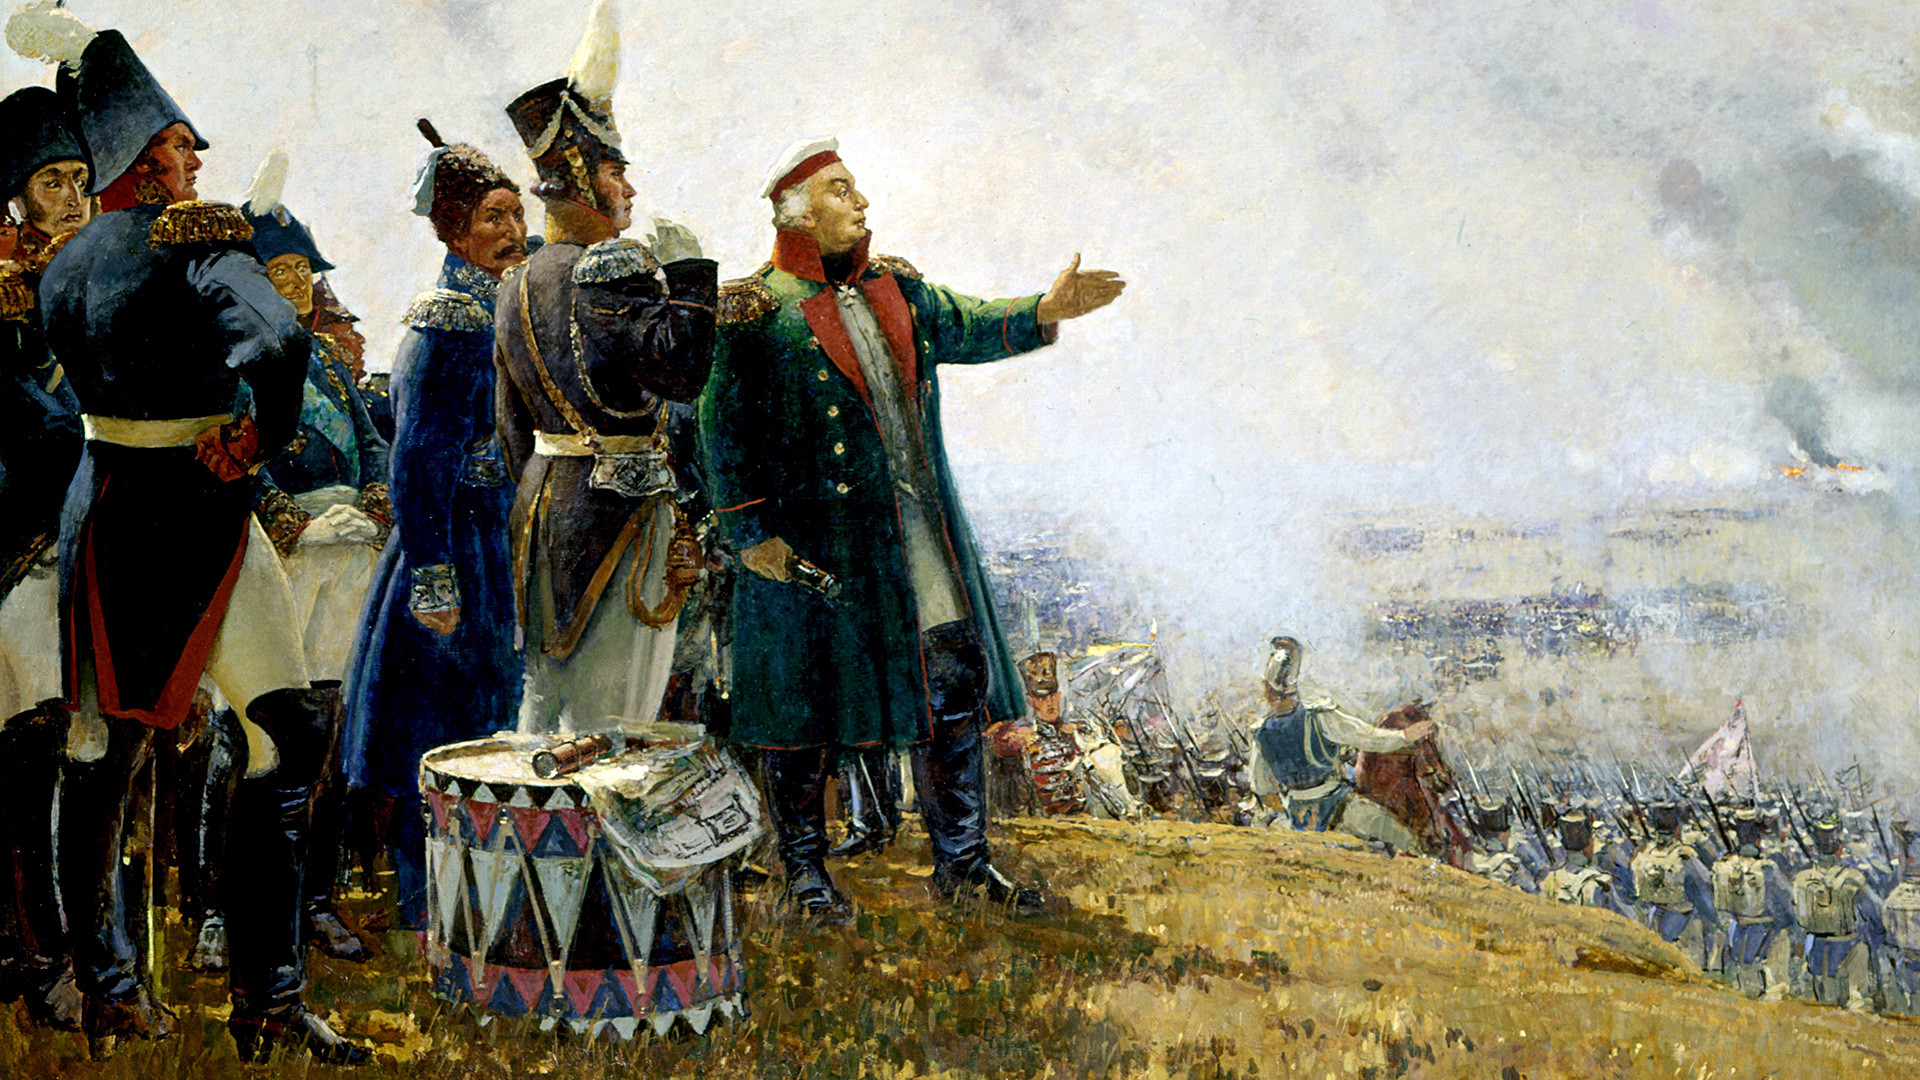 Sergei Gerasimov. Kutuzov in the Borodino Battle, oil on canvas, Borodino Panorama Museum, Moscow